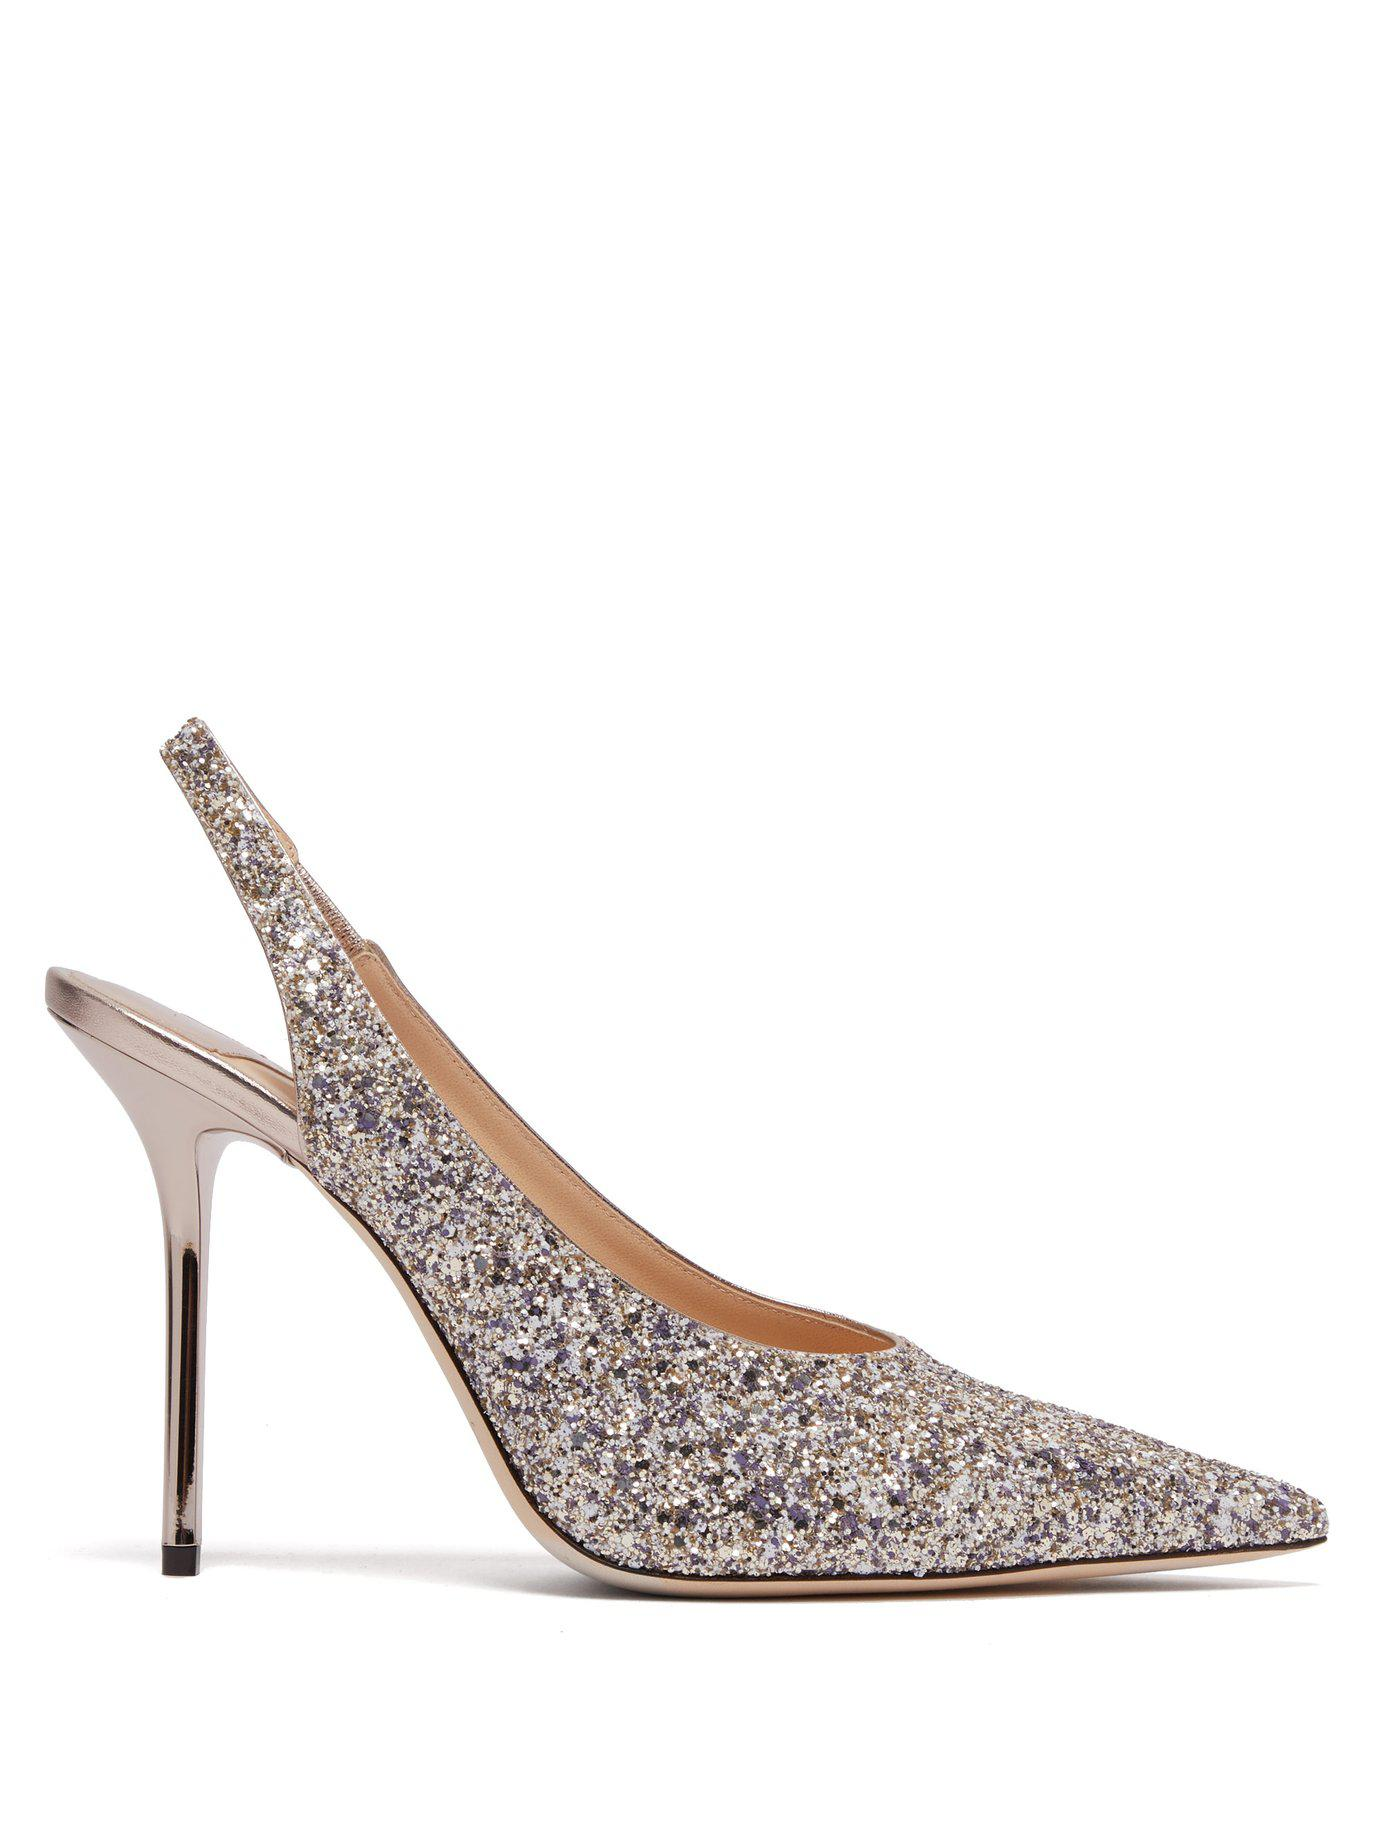 e13a9d3dcd03 Lyst - Jimmy Choo Ivy 100 Glitter Slingback Pumps in Metallic